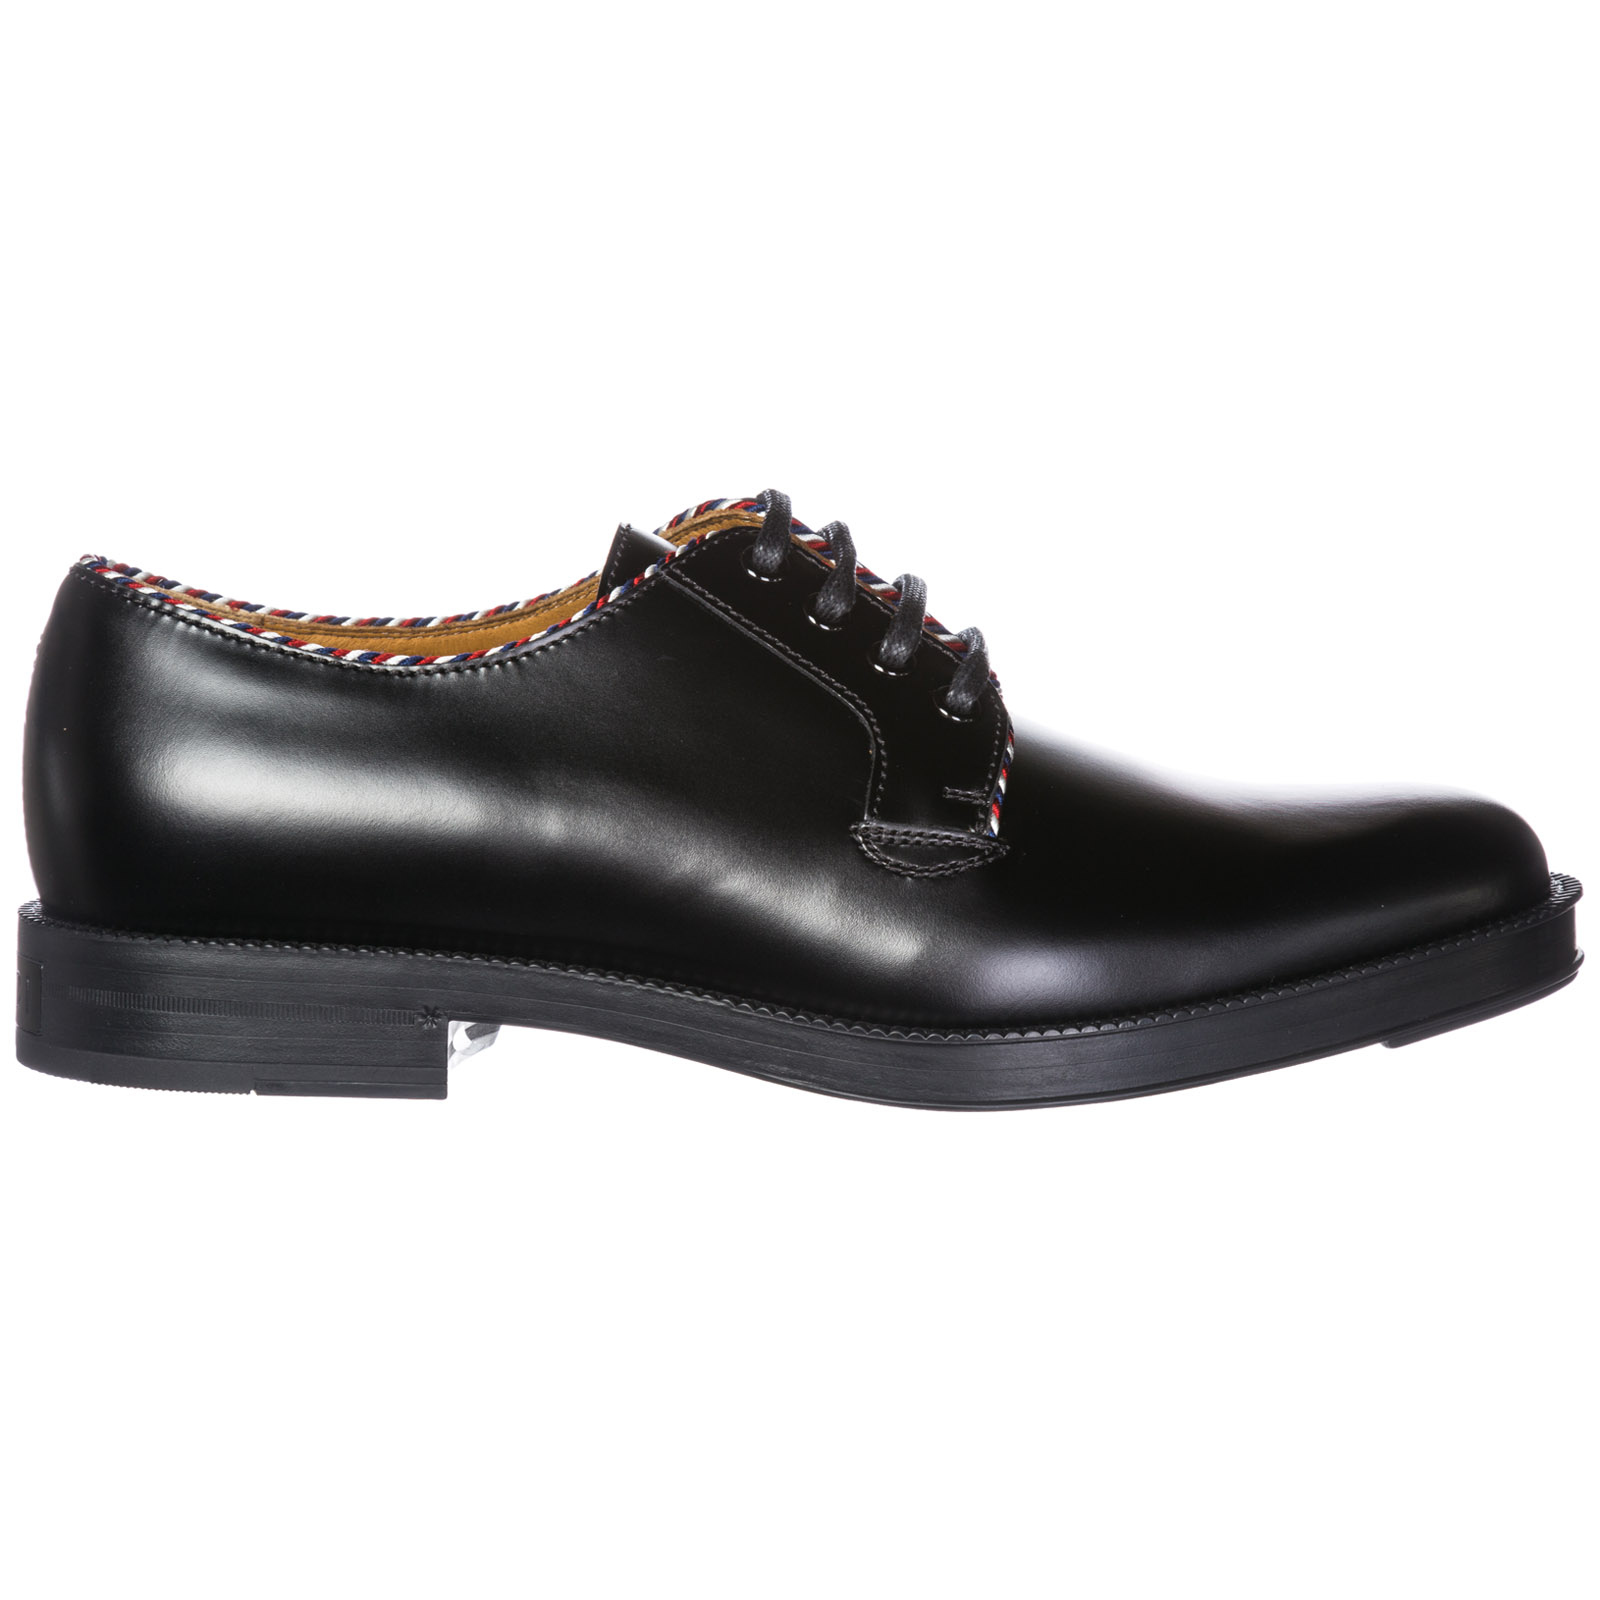 Men's classic leather lace up laced formal shoes derby